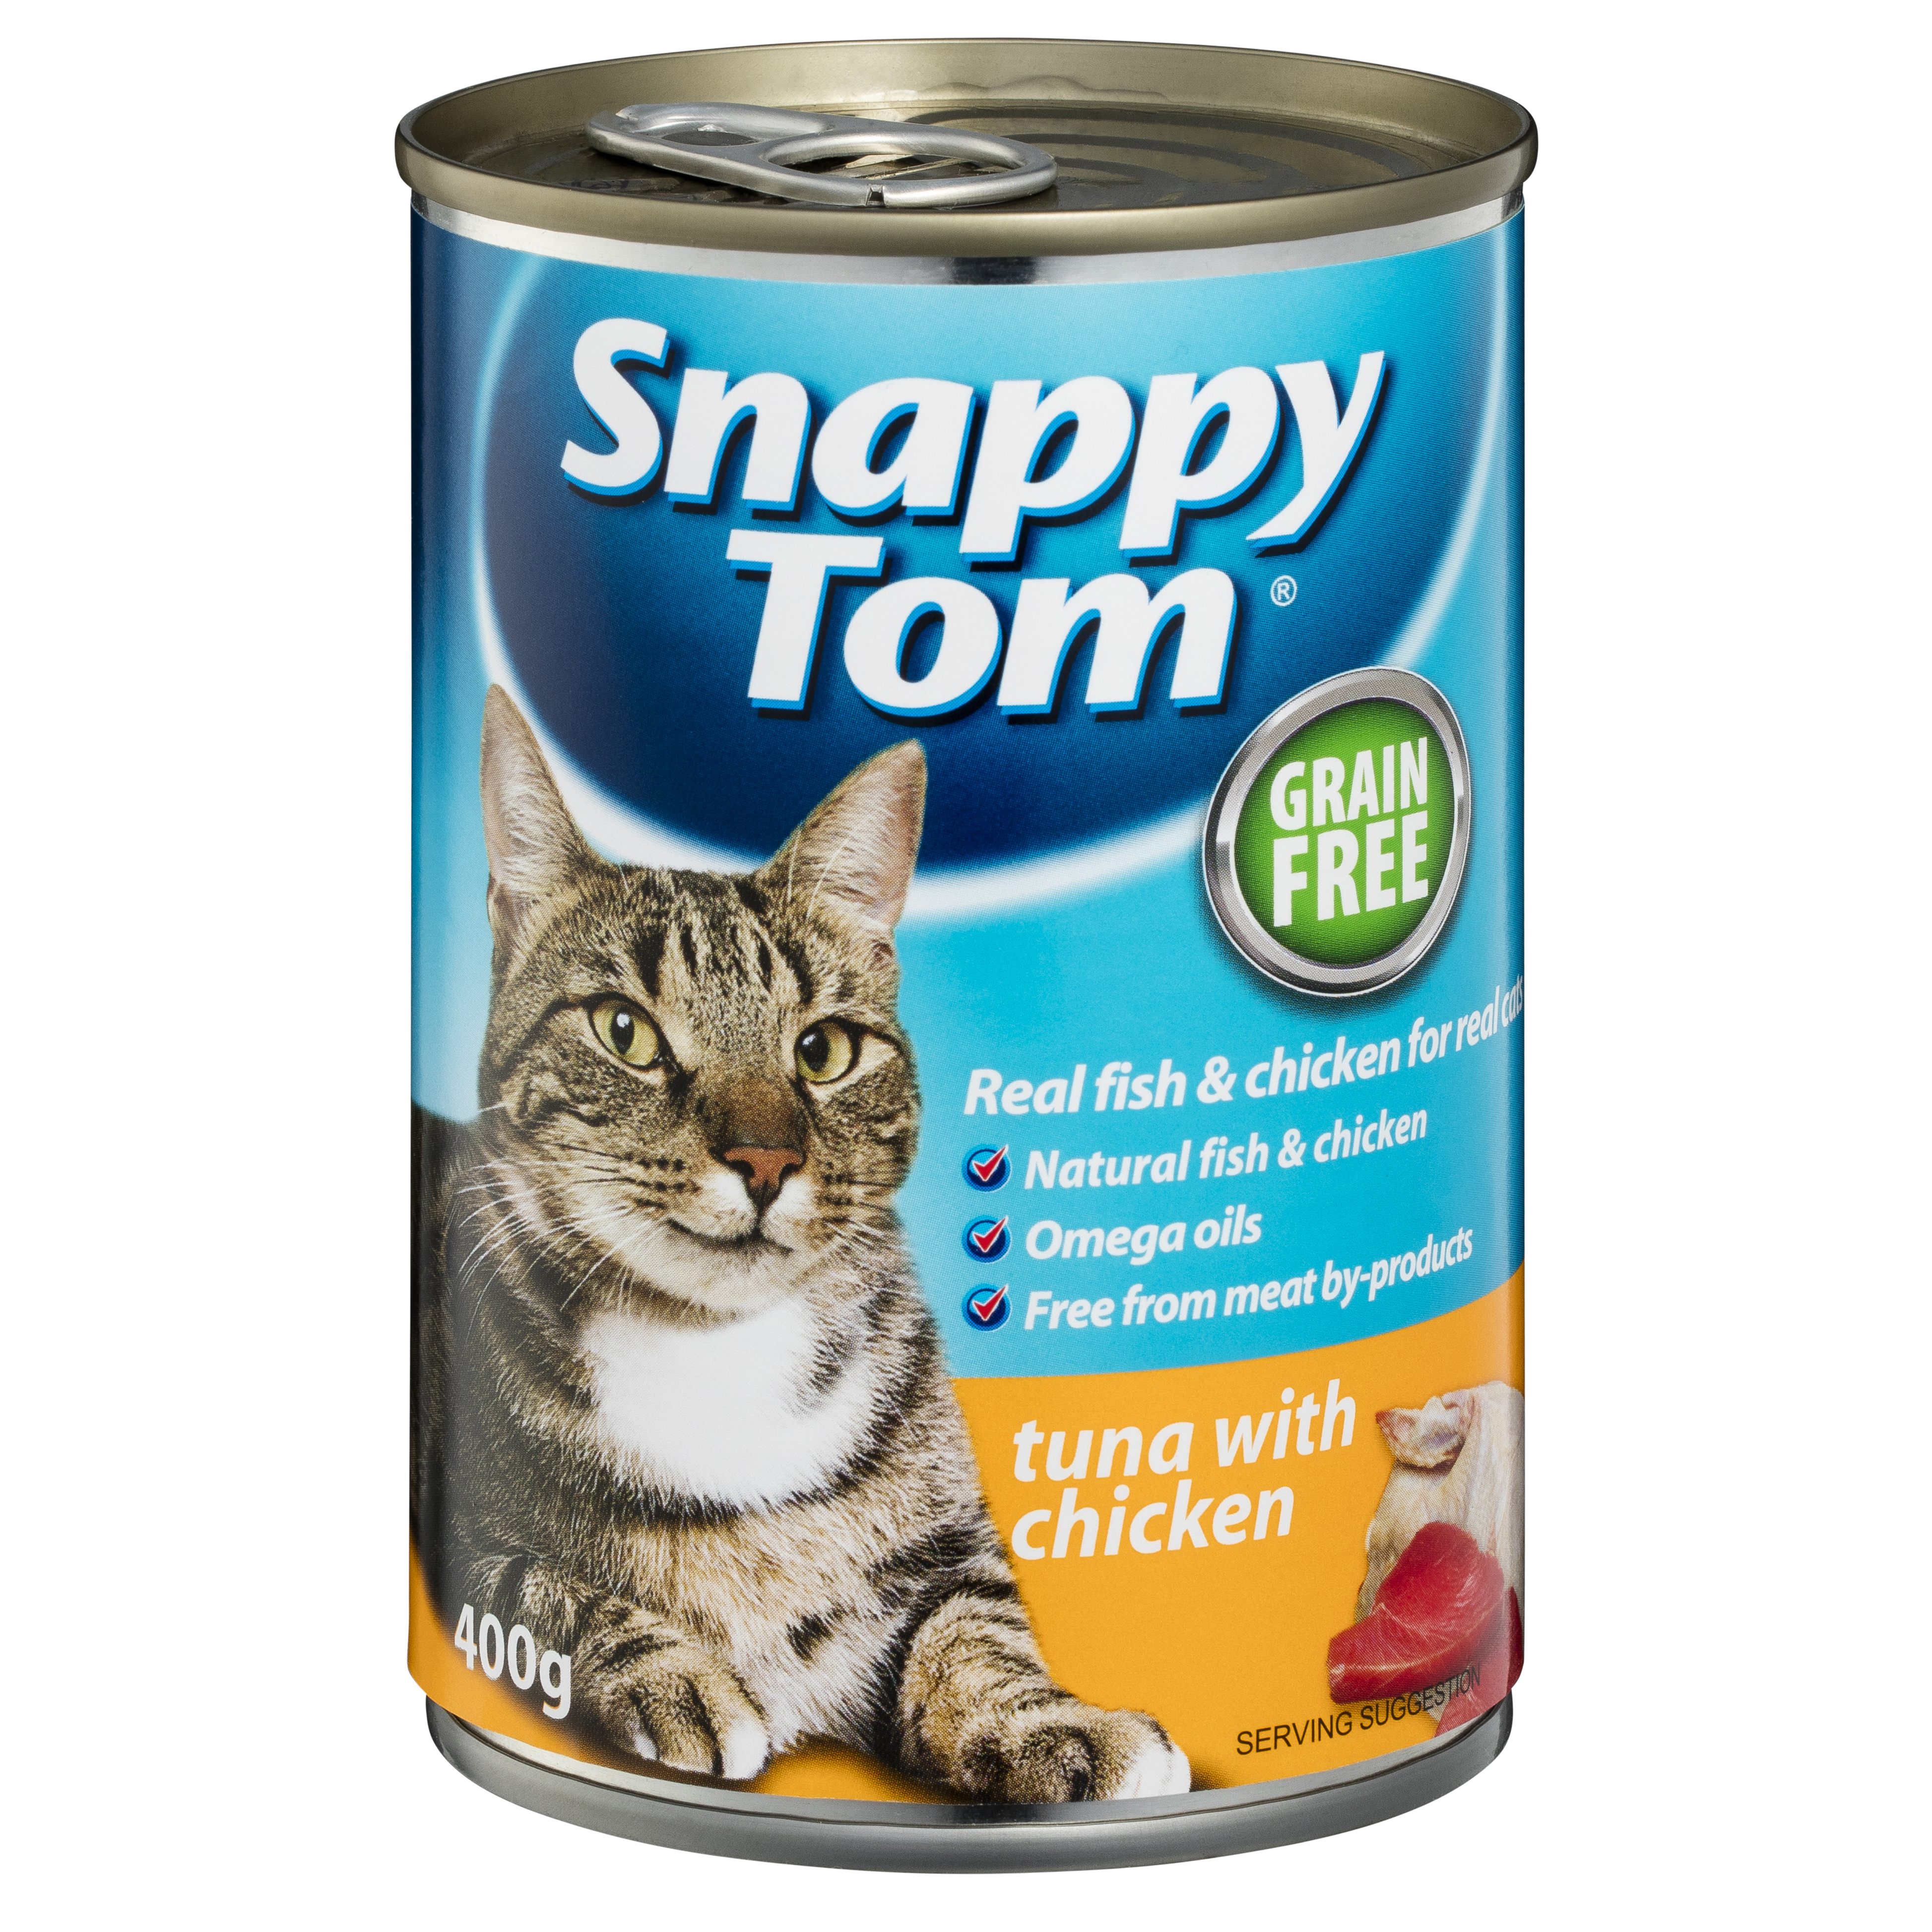 snappy-tom-tuna-with-chicken-400g-0